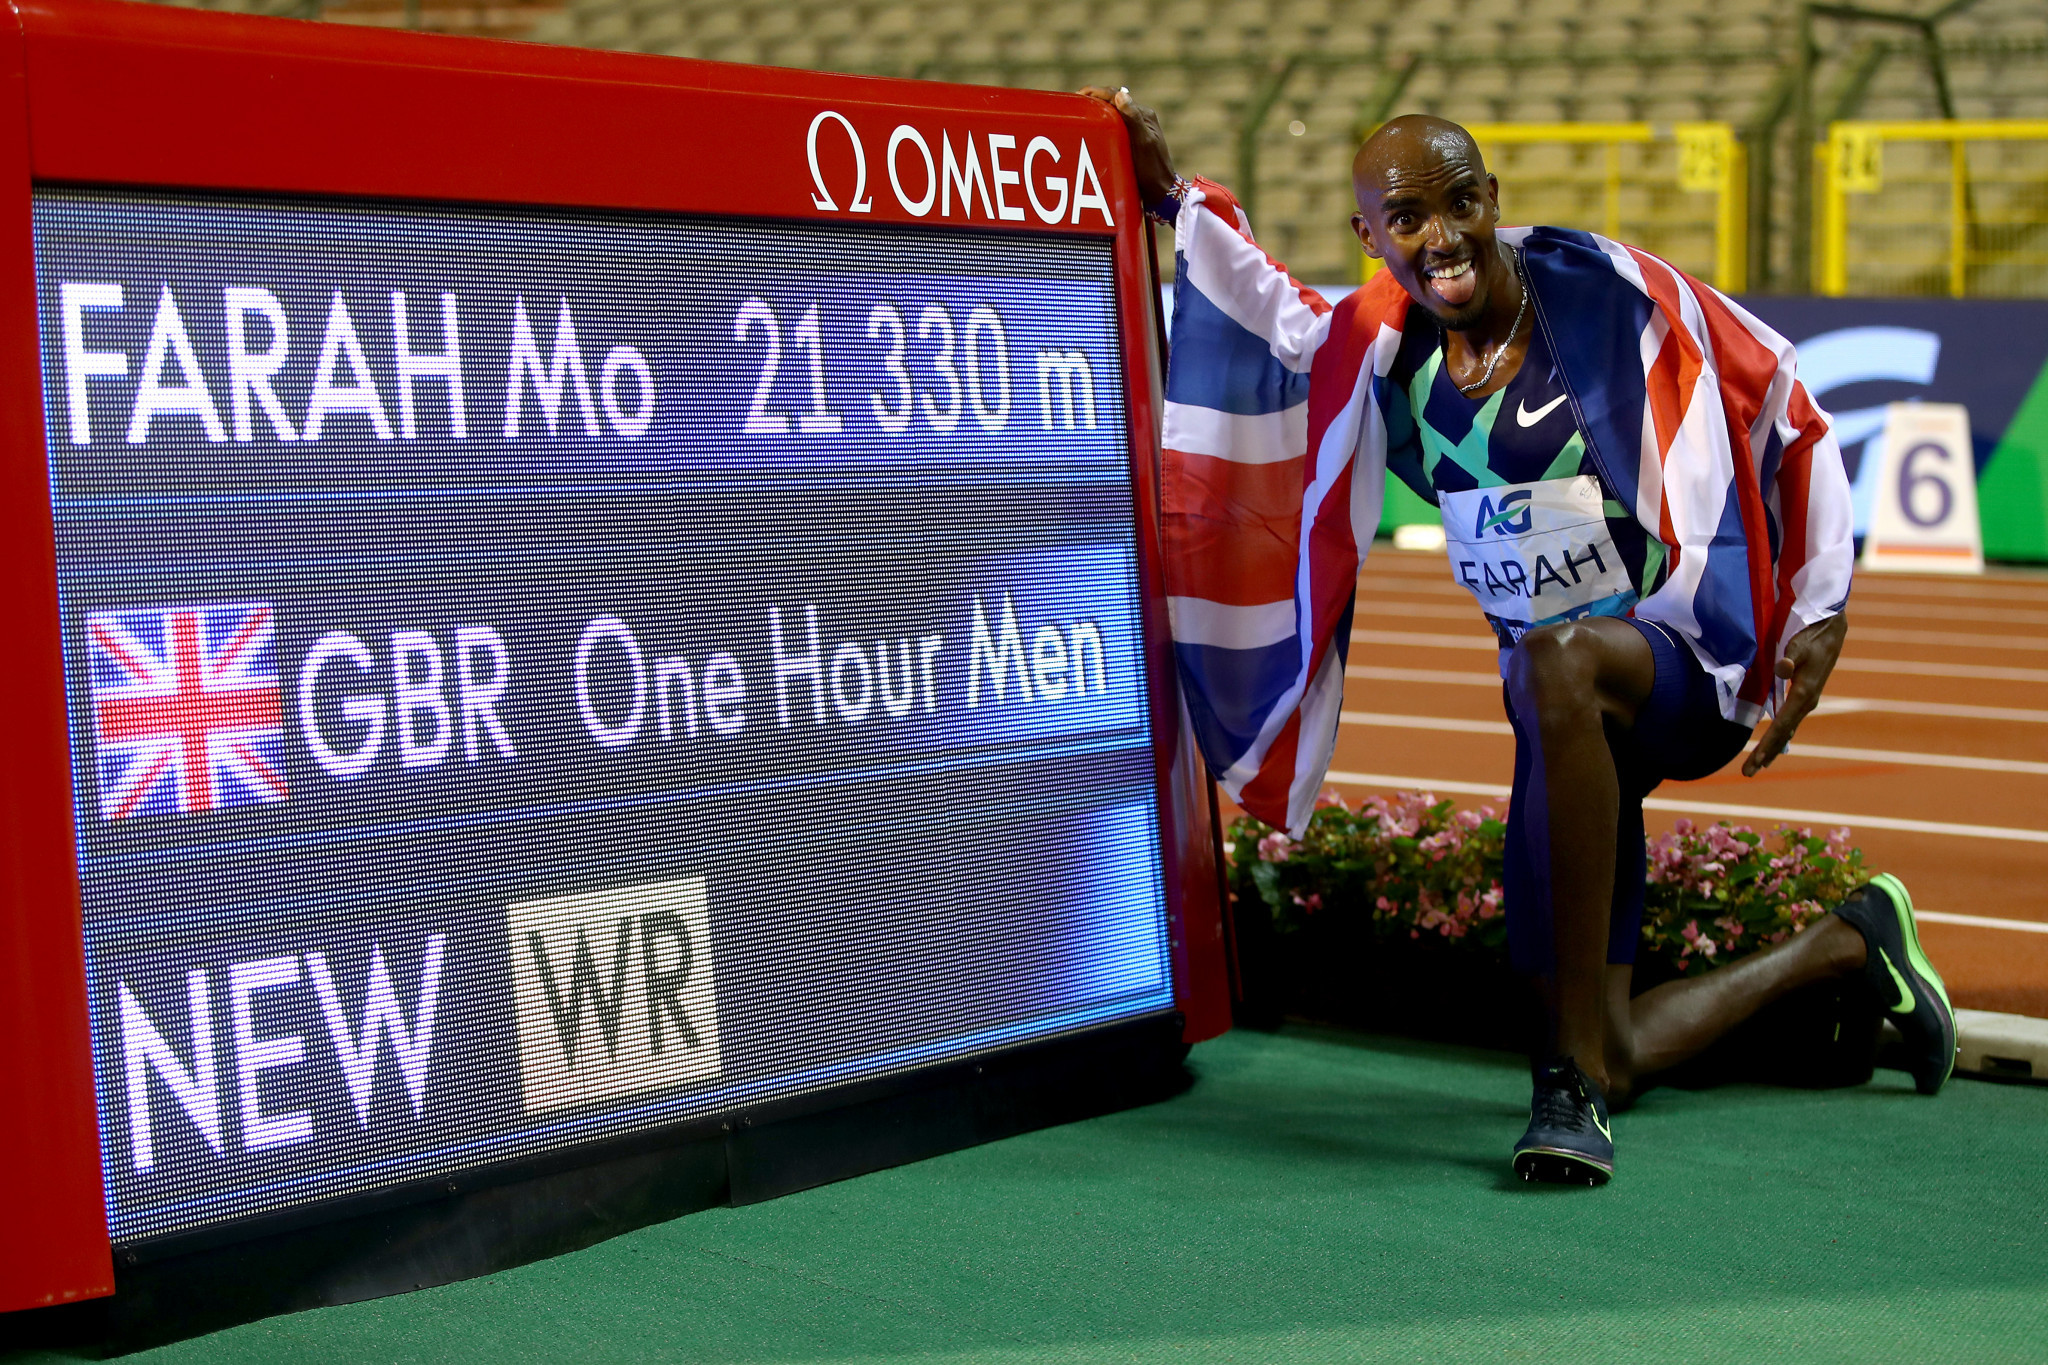 Mo Farah wore high-tech Nike spikes as he broke the men's one-hour world record in September ©Getty Images